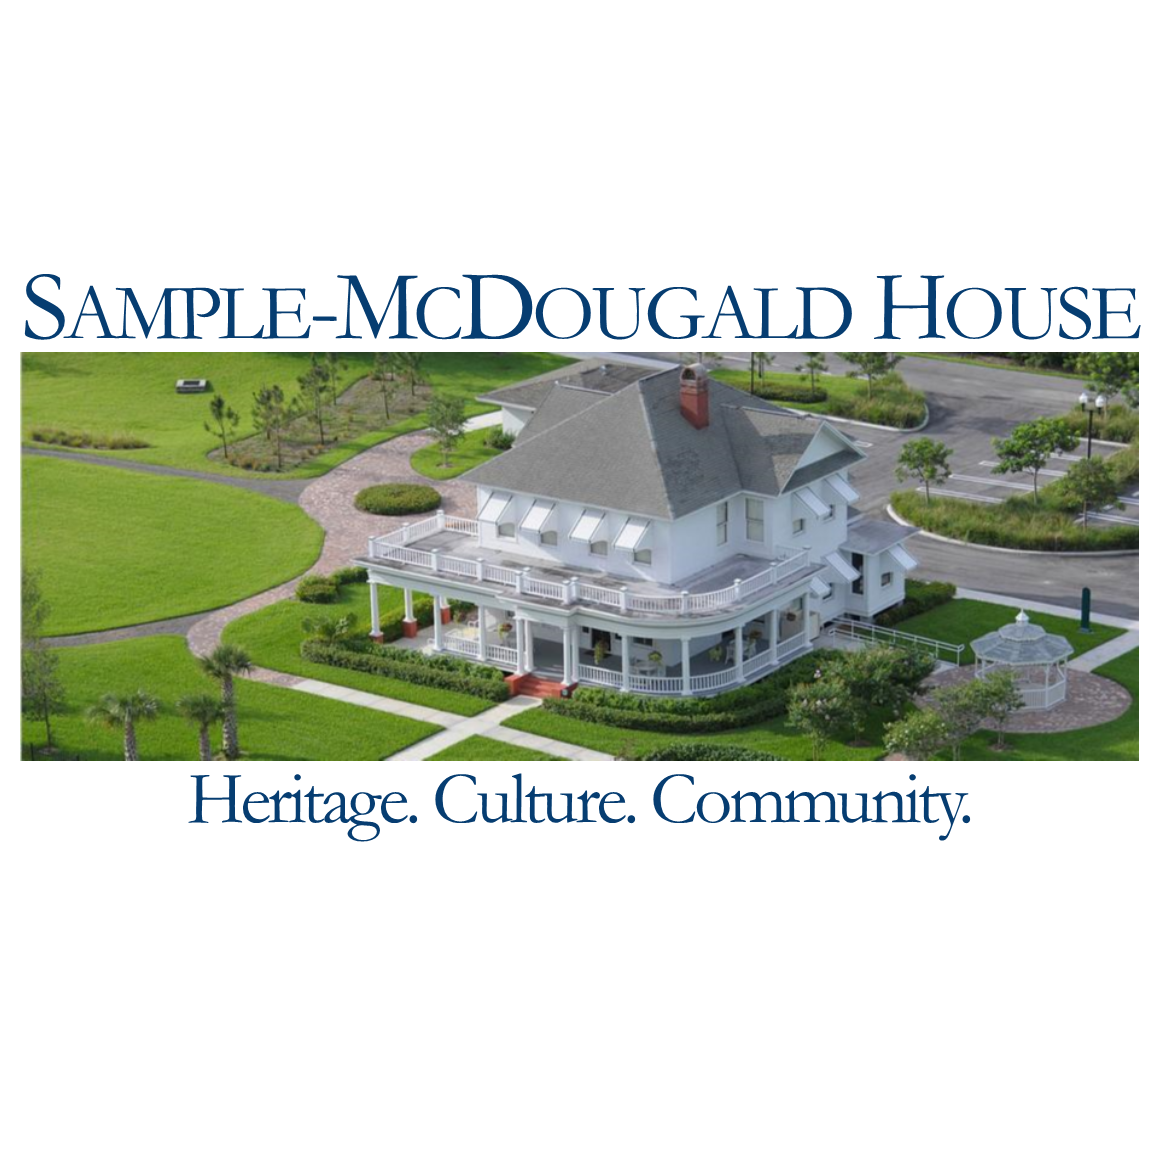 Sample-McDougald House - Pompano Beach, FL - Museums & Attractions